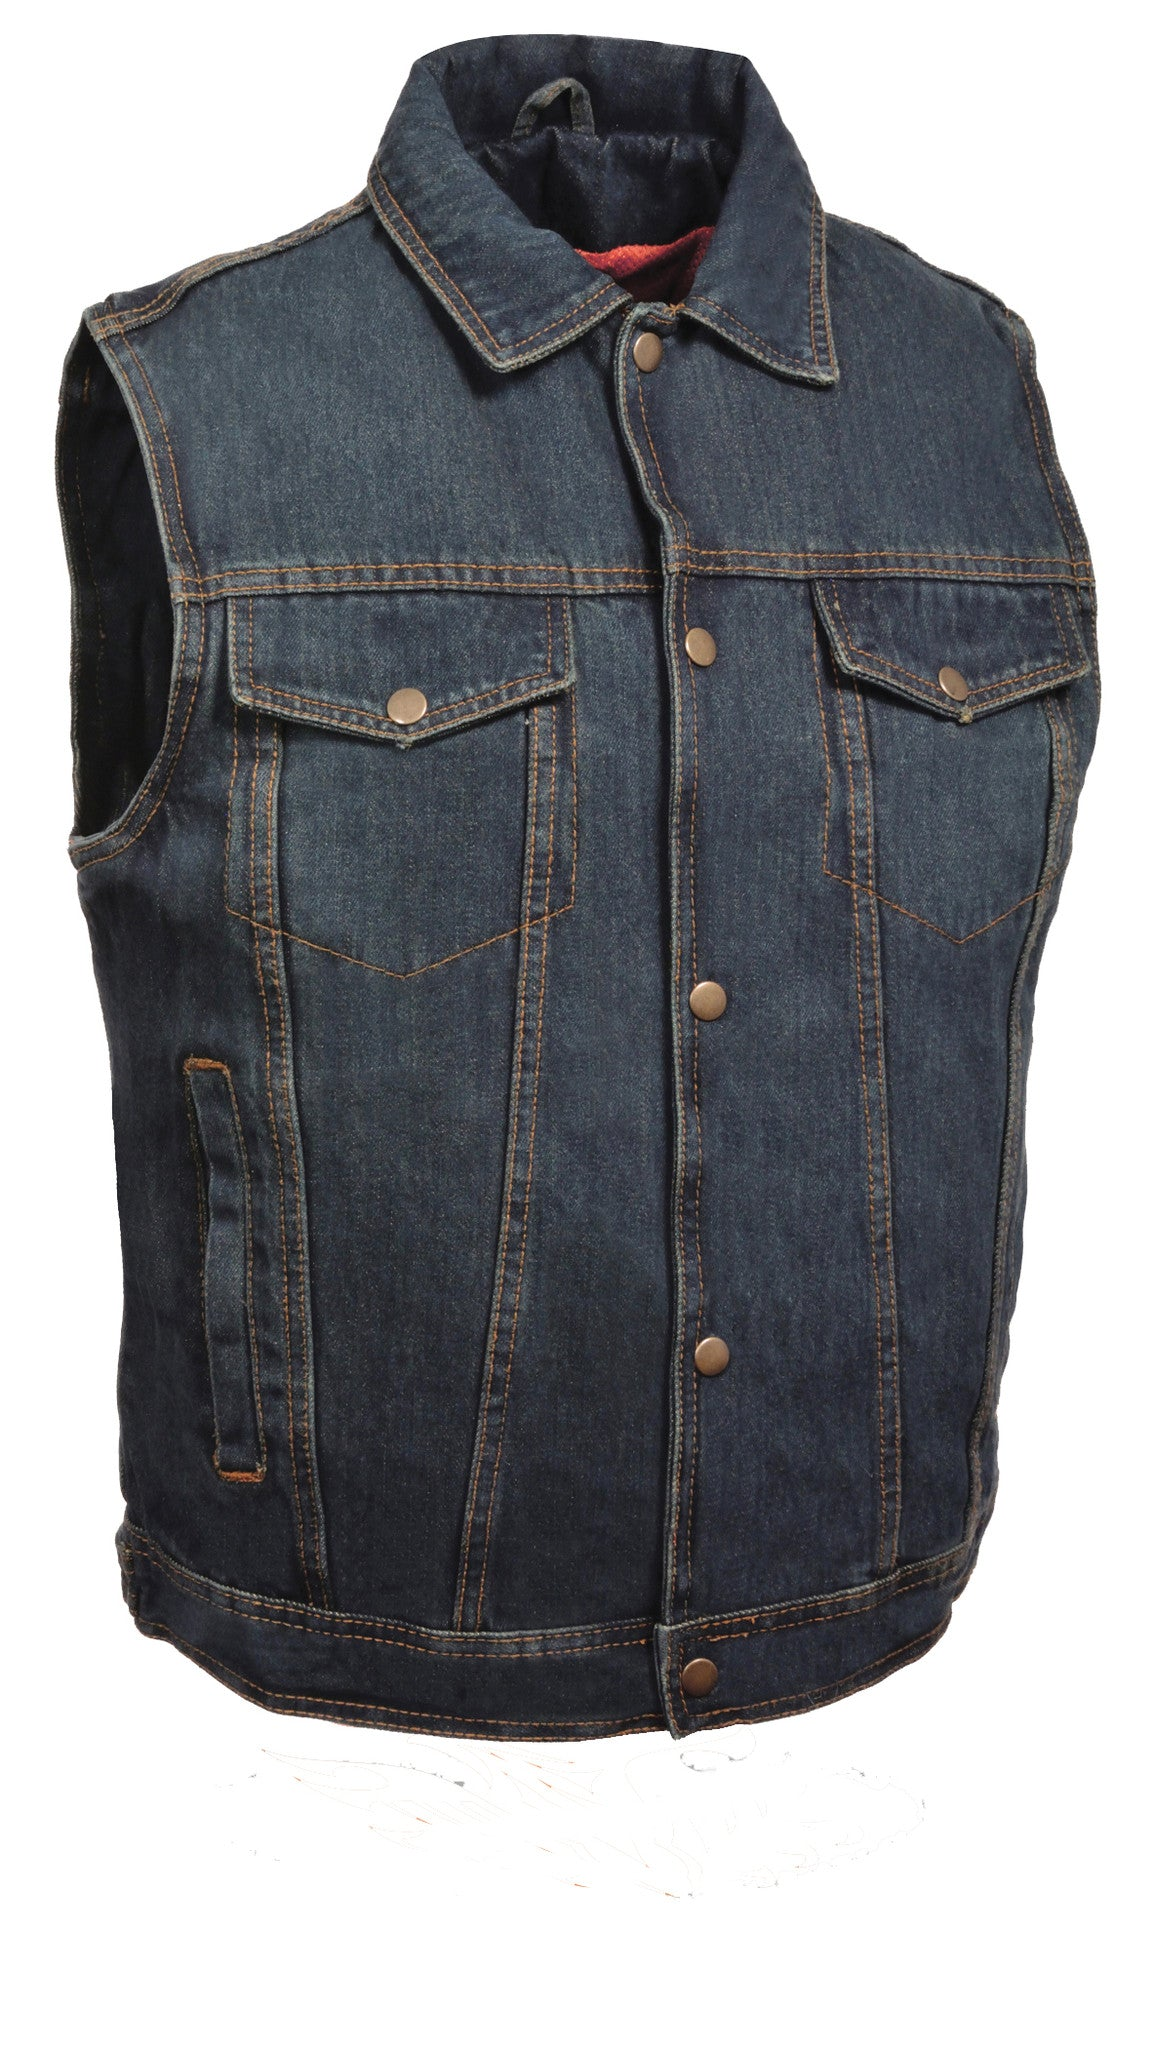 MEN'S RIDING SHIRT COLLAR BLUE DENIM VEST 100% COTTON W/ GUN POCKETS